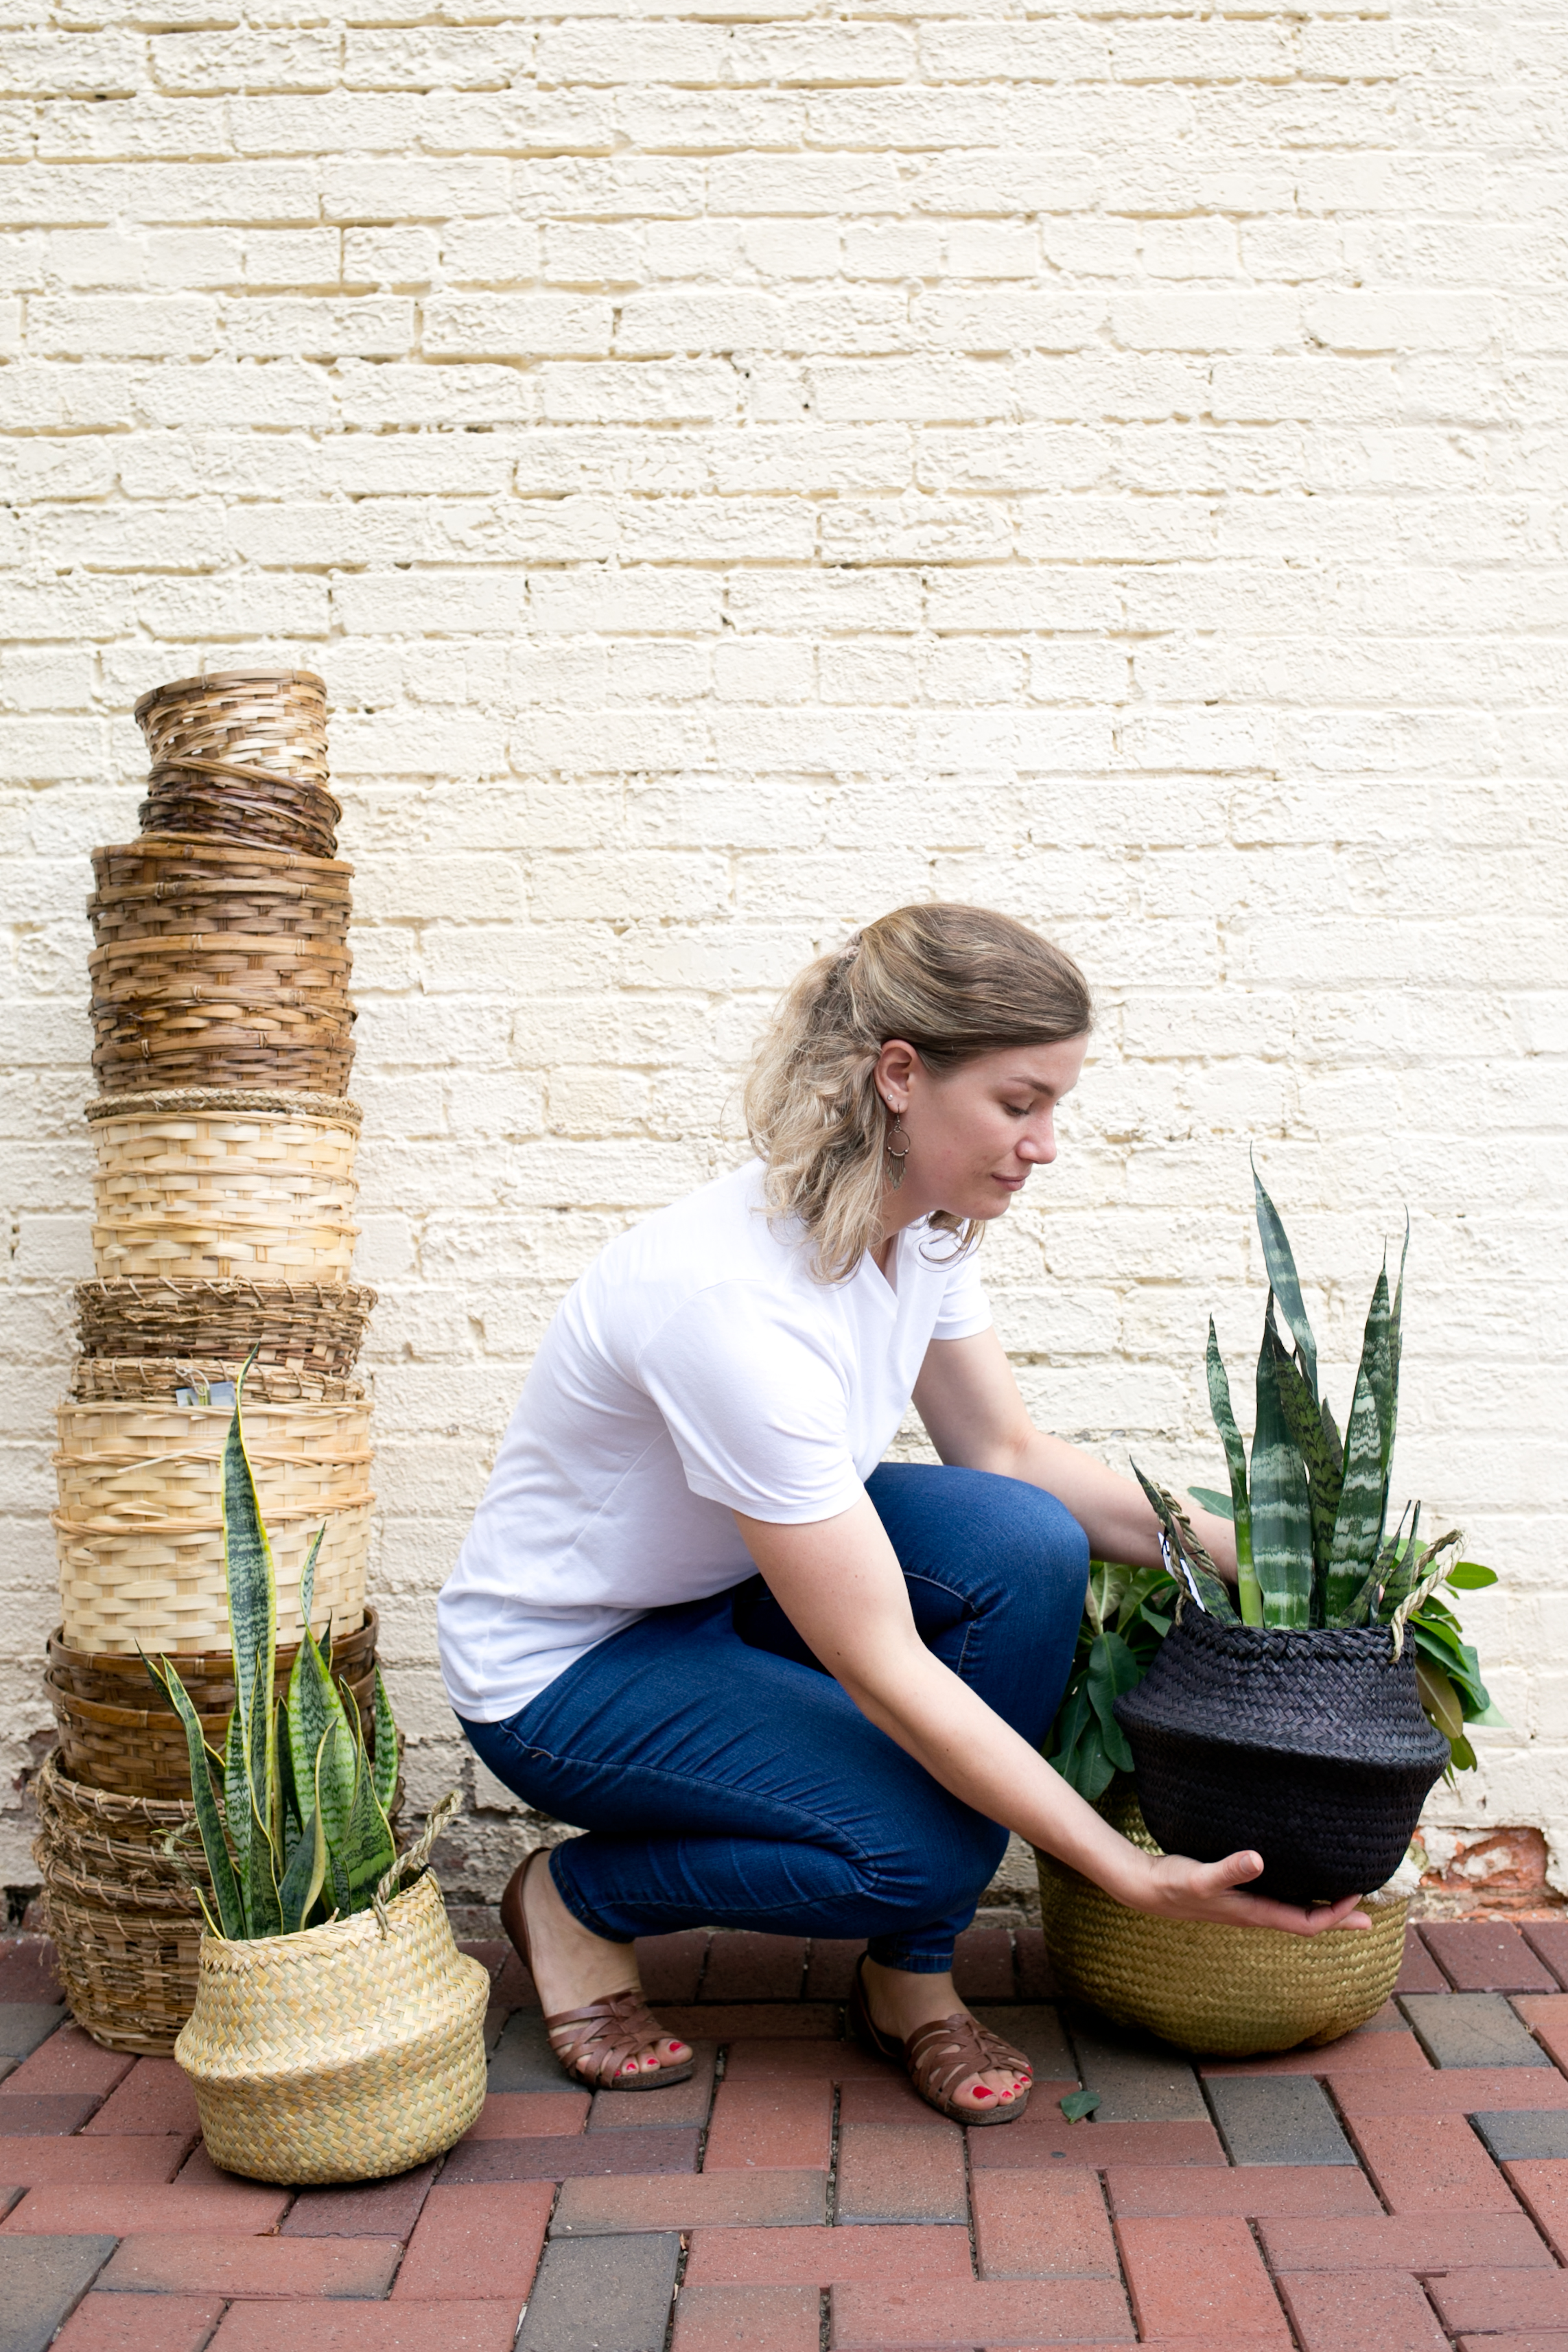 Snake plants (Sansevieria sp.) look good indoors and outdoors.